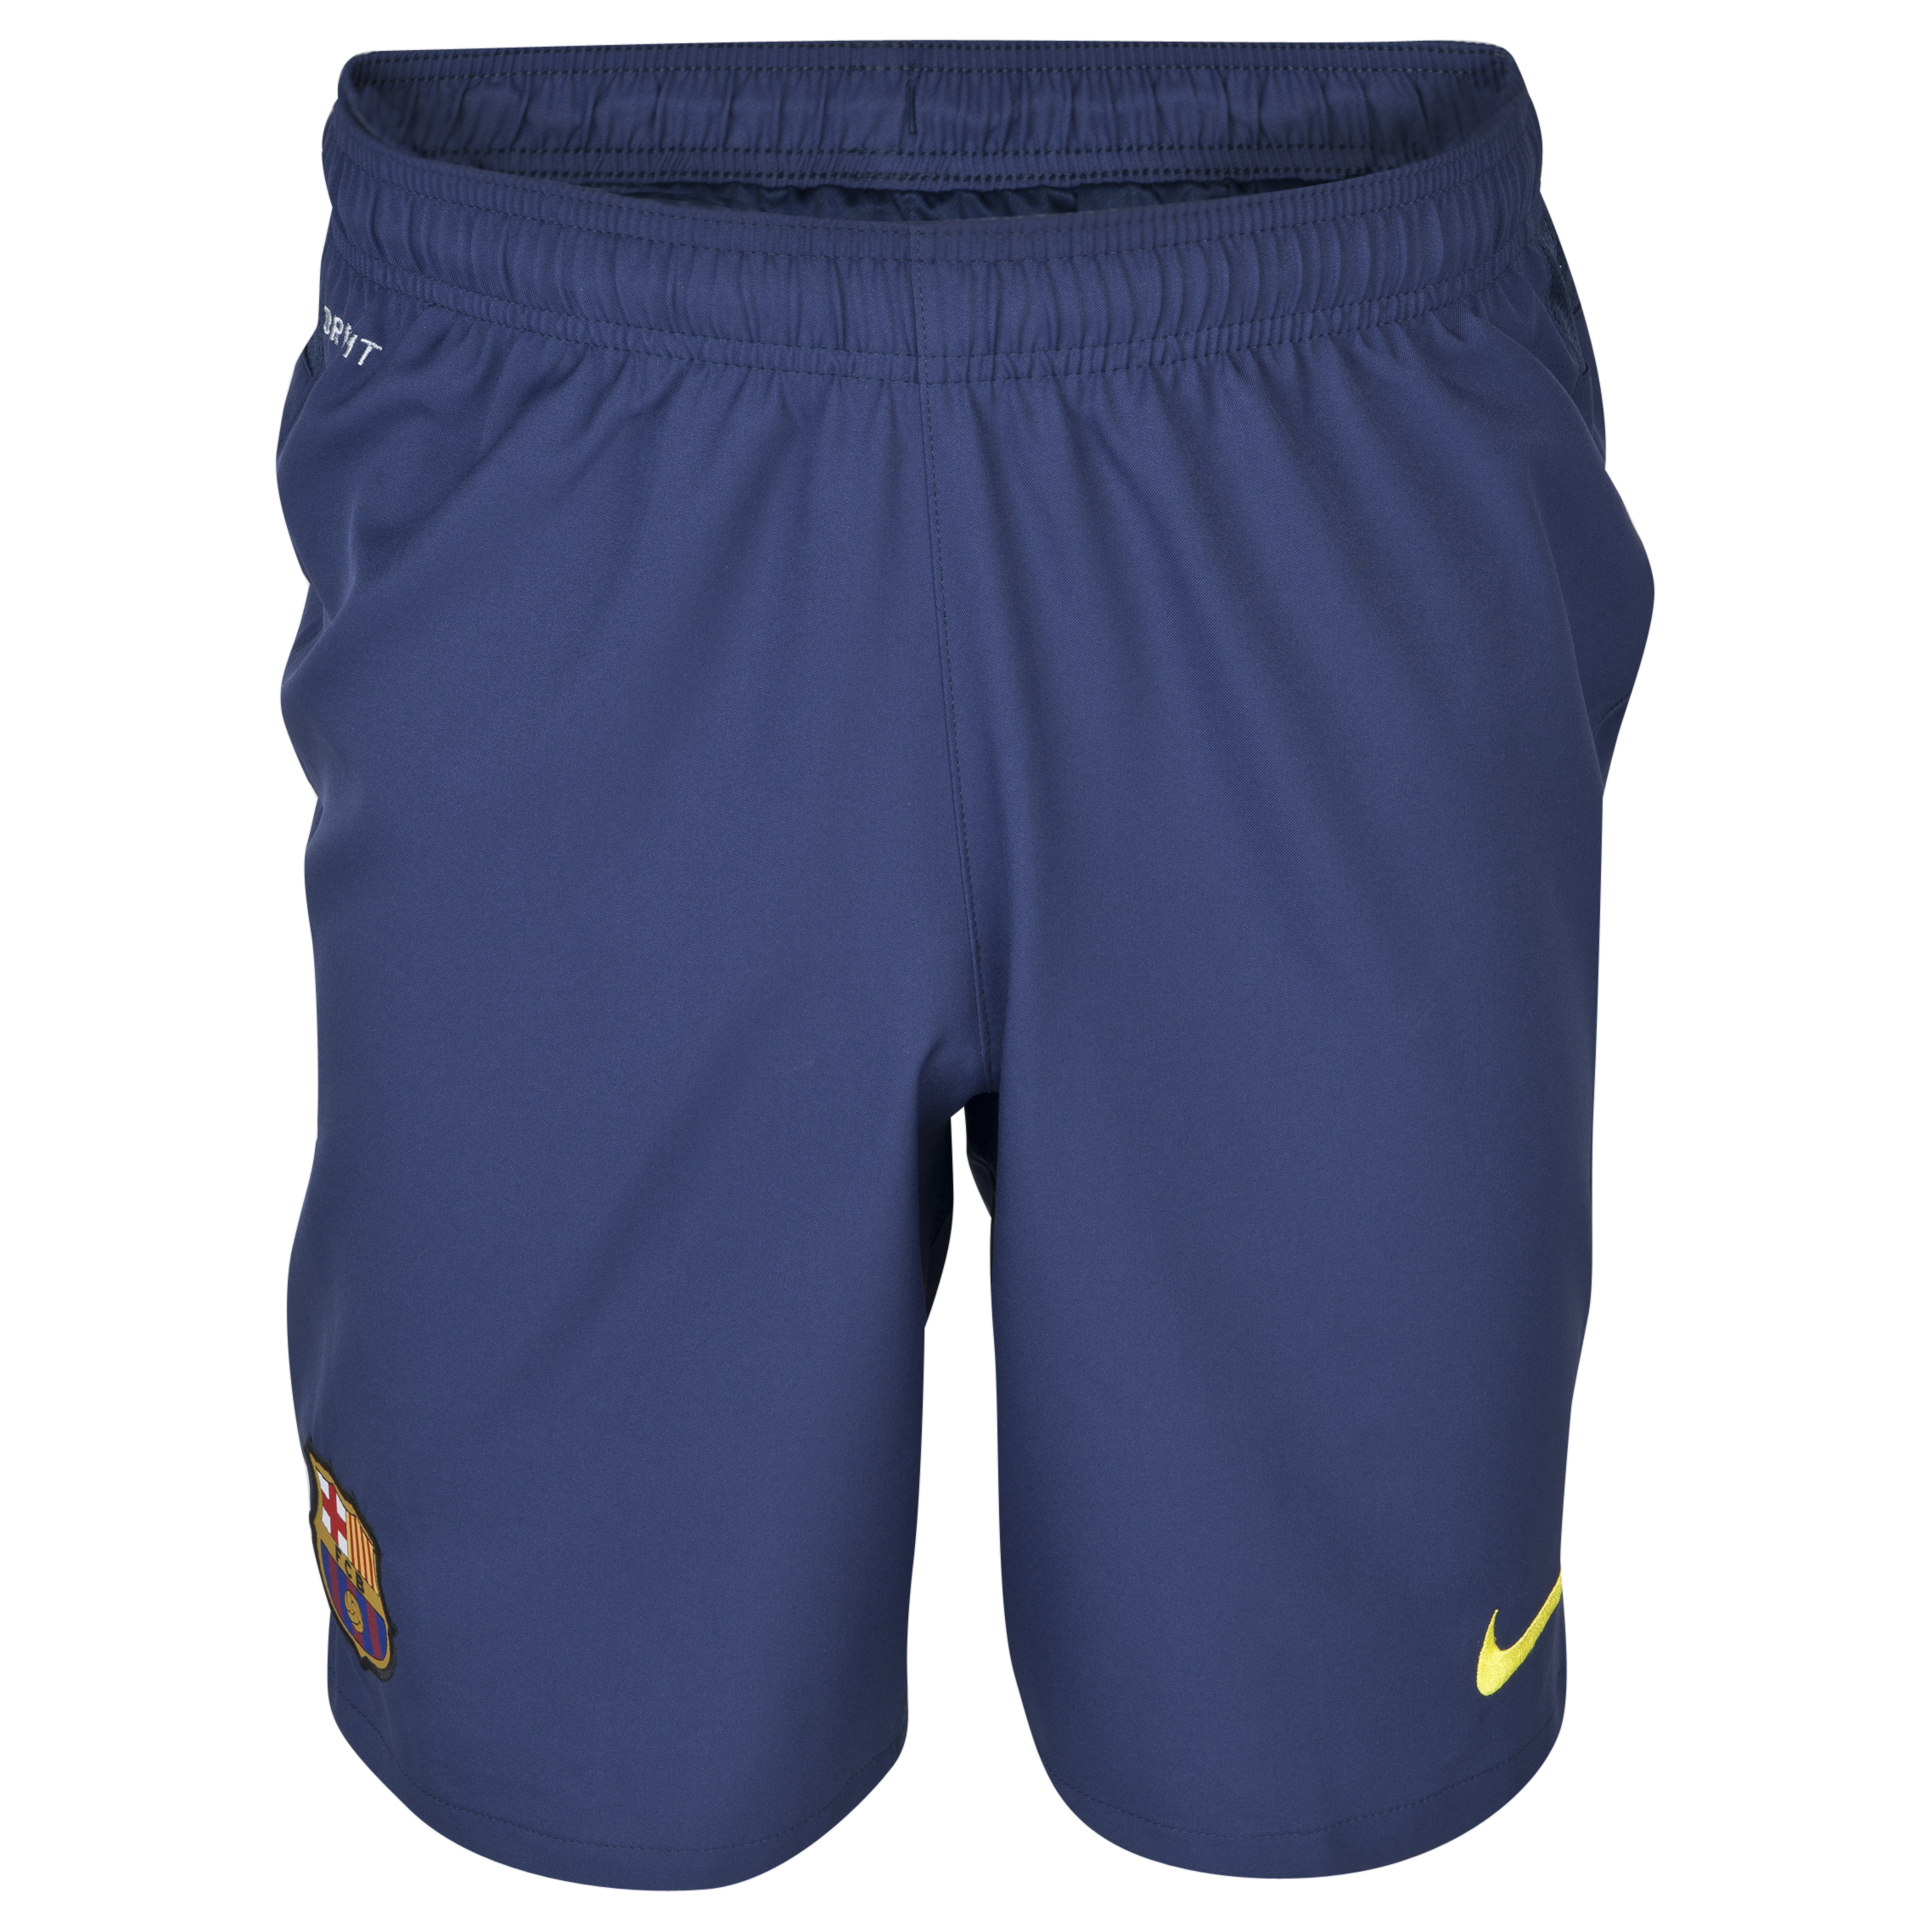 Barcelona Home Shorts 2013/14